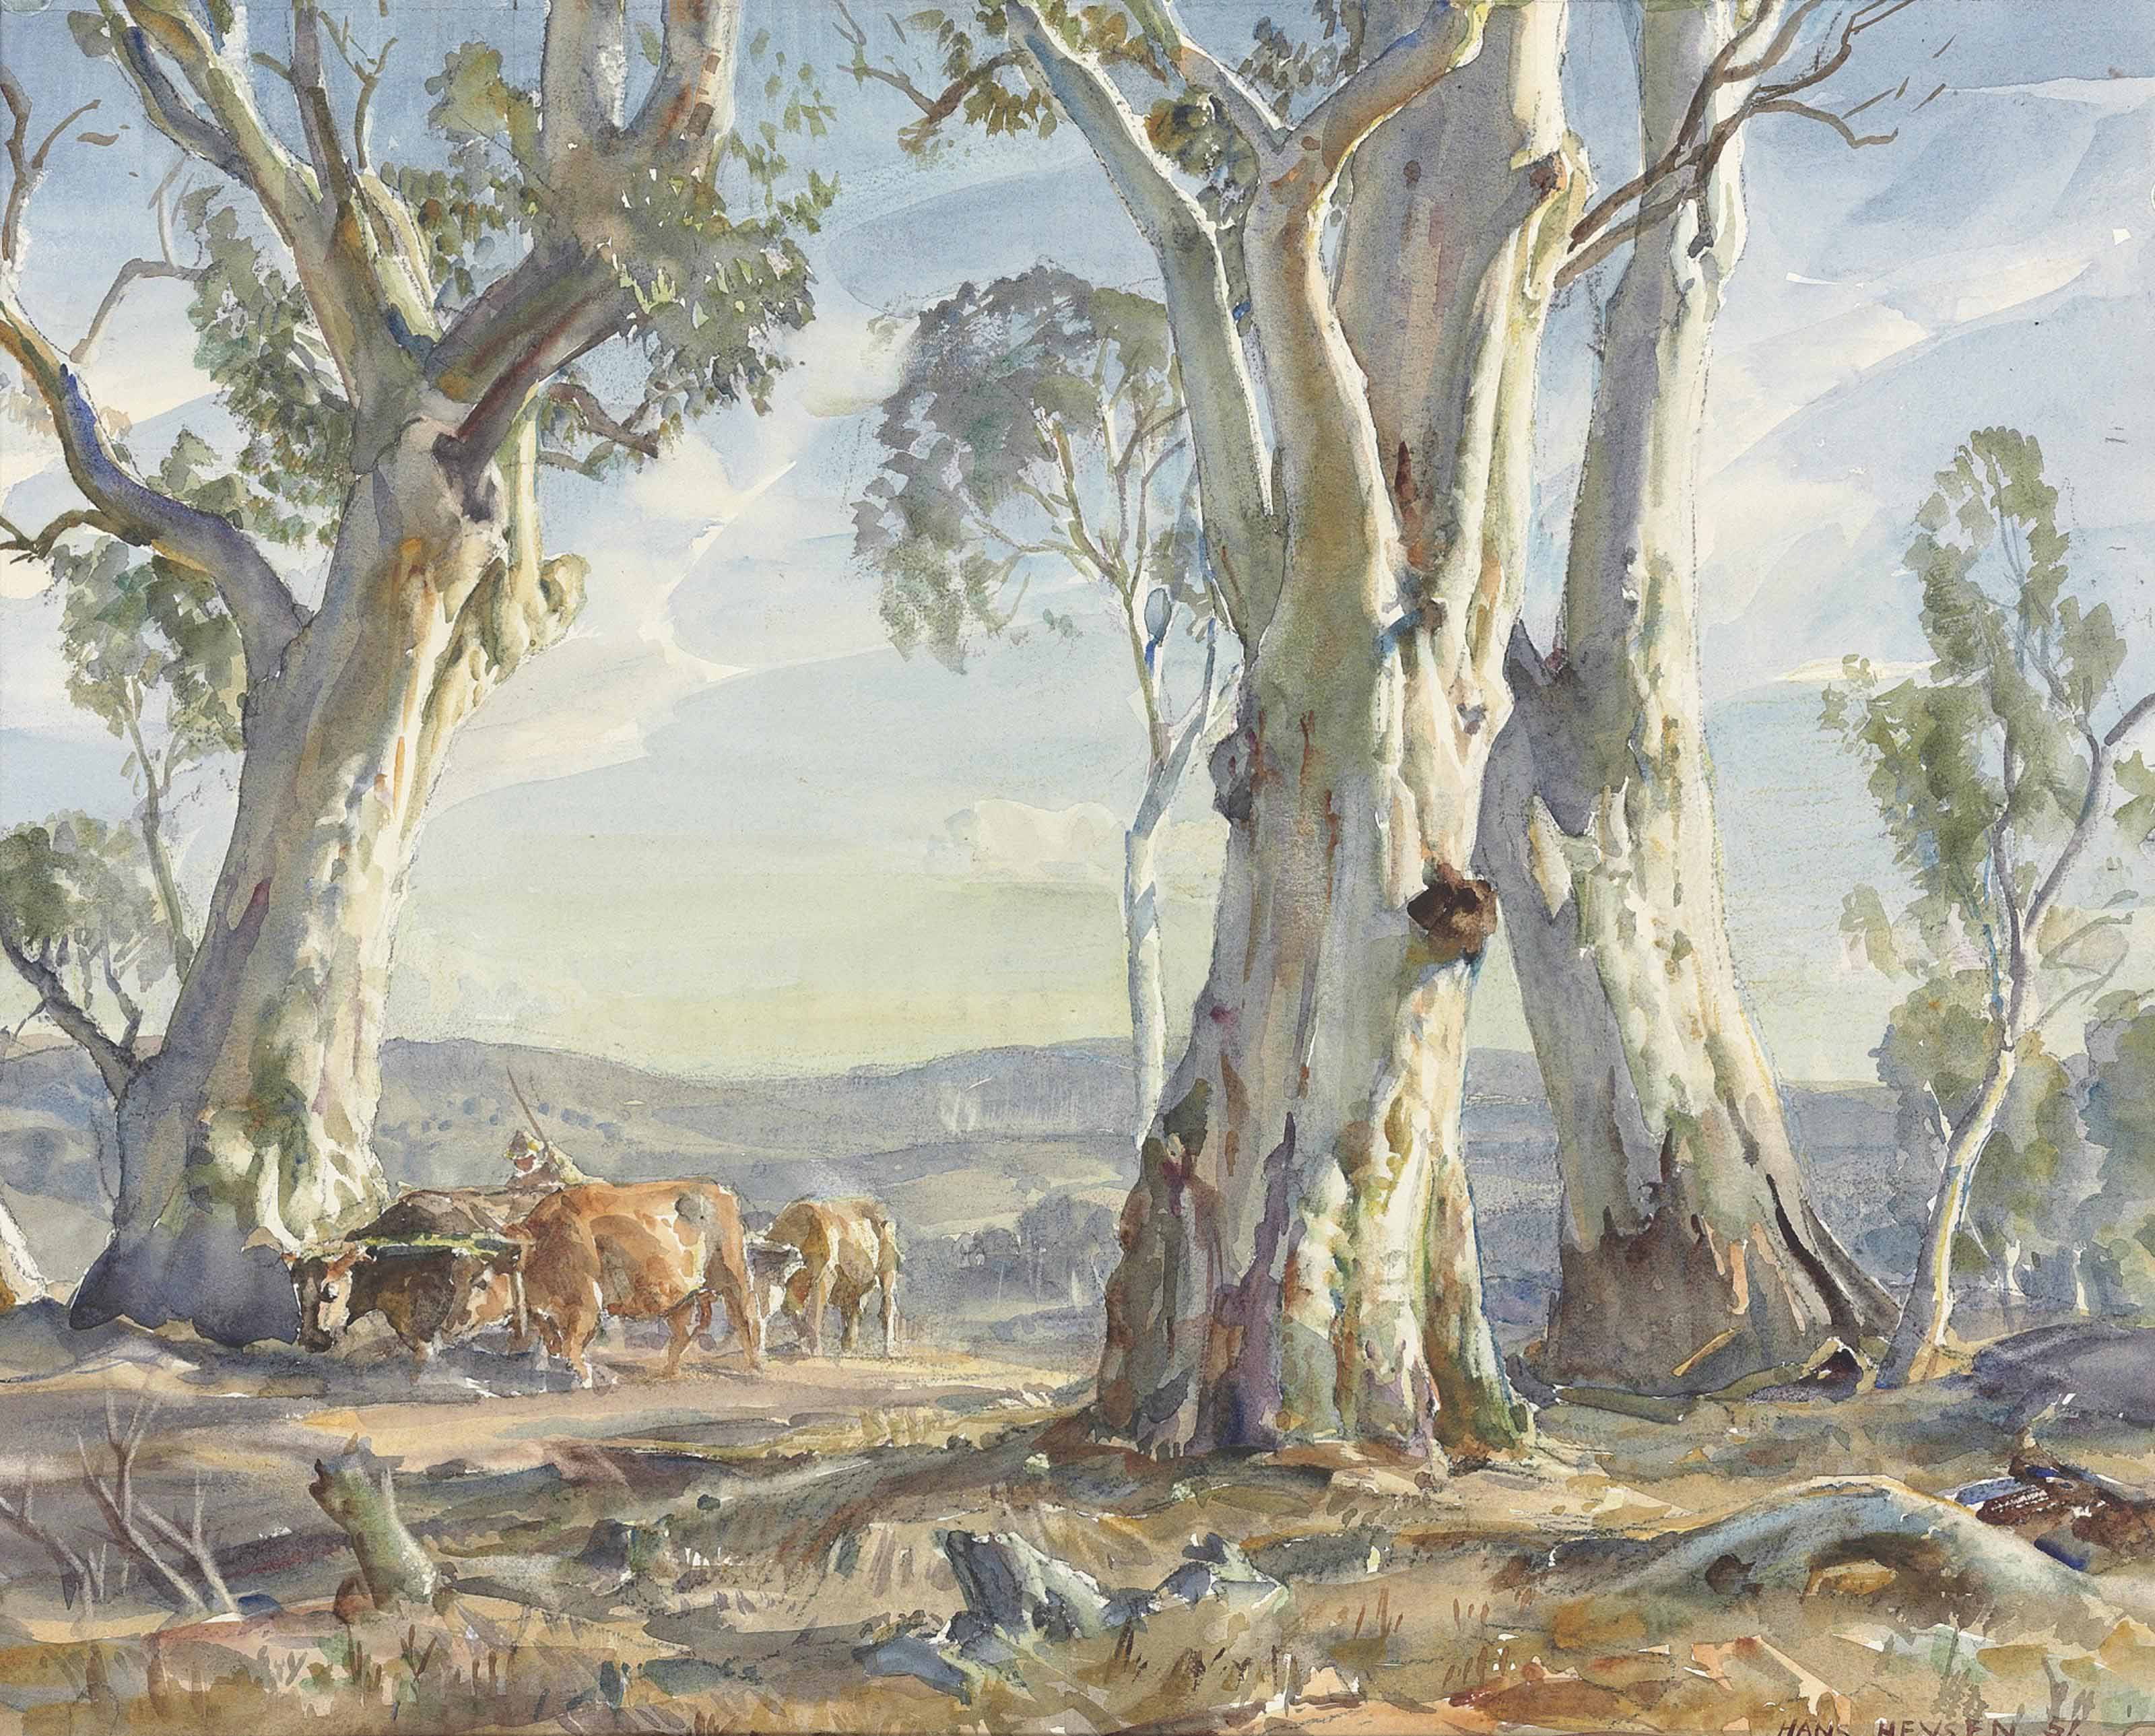 A drover and cattle, Ambleside